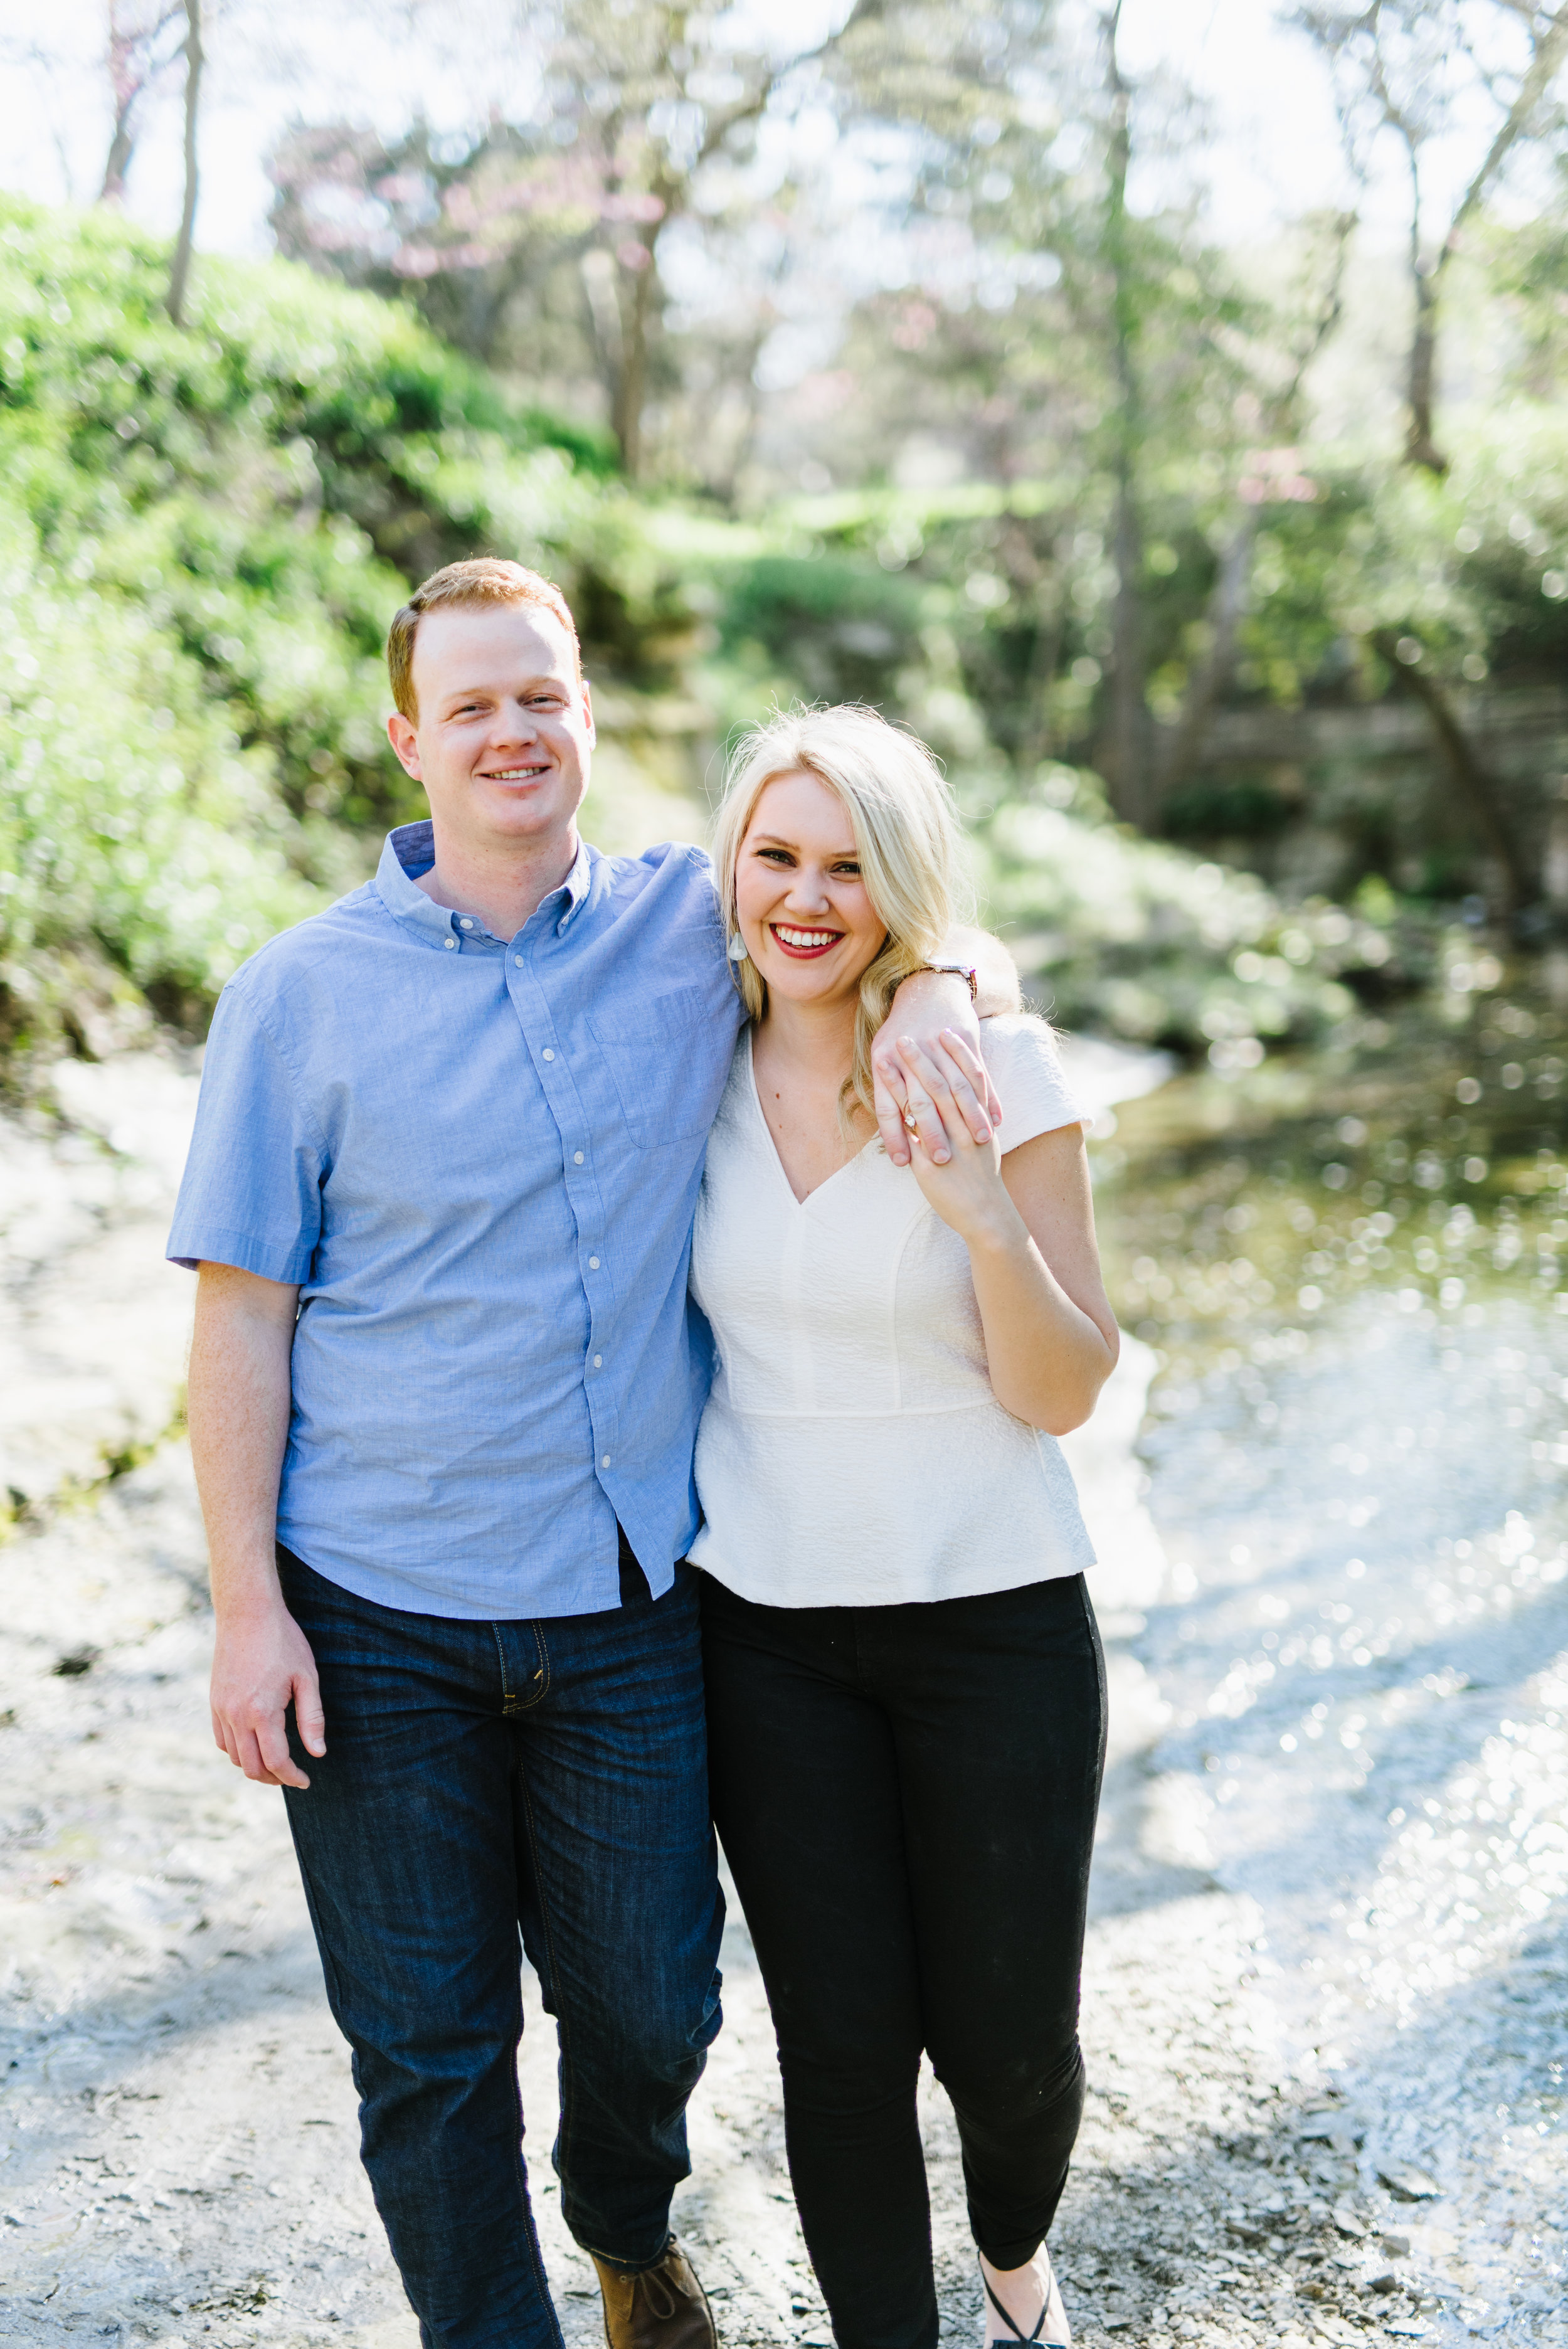 Callie+JonEngaged-107.JPG